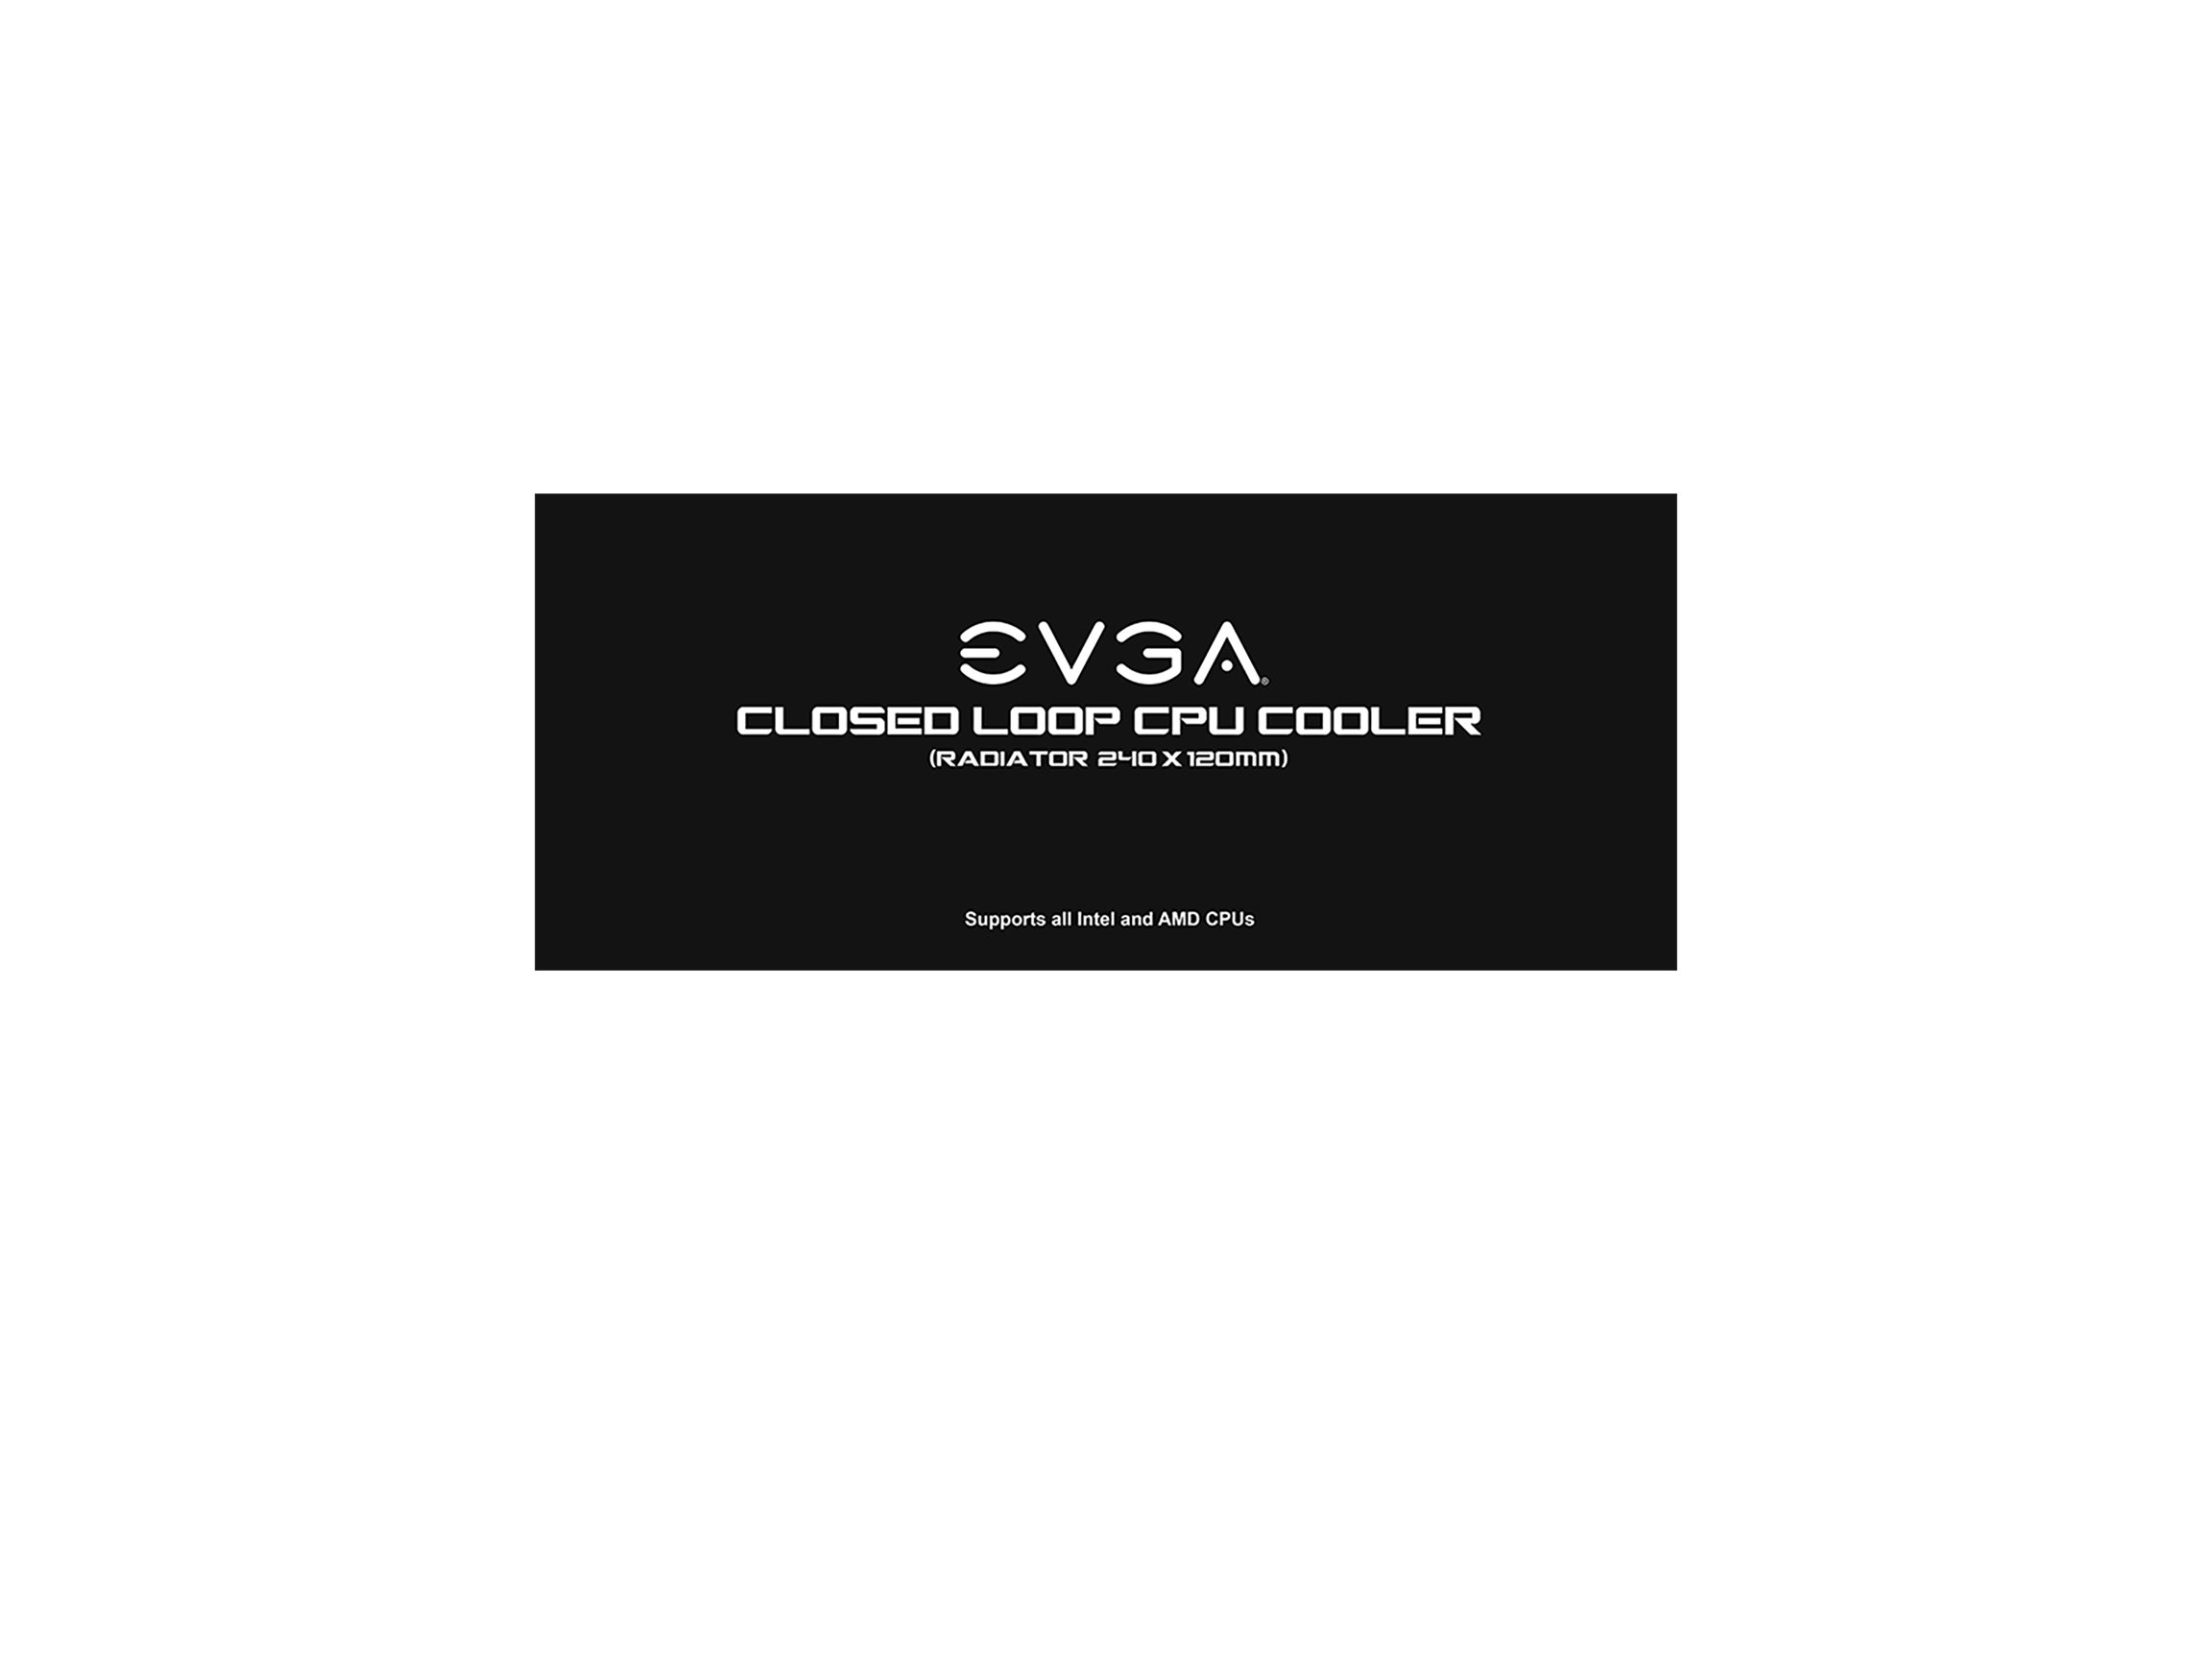 EVGA CLC 240 Liquid/Water CPU Cooler, RGB LED Cooling 400-HY-CL24-V1 by EVGA (Image #8)